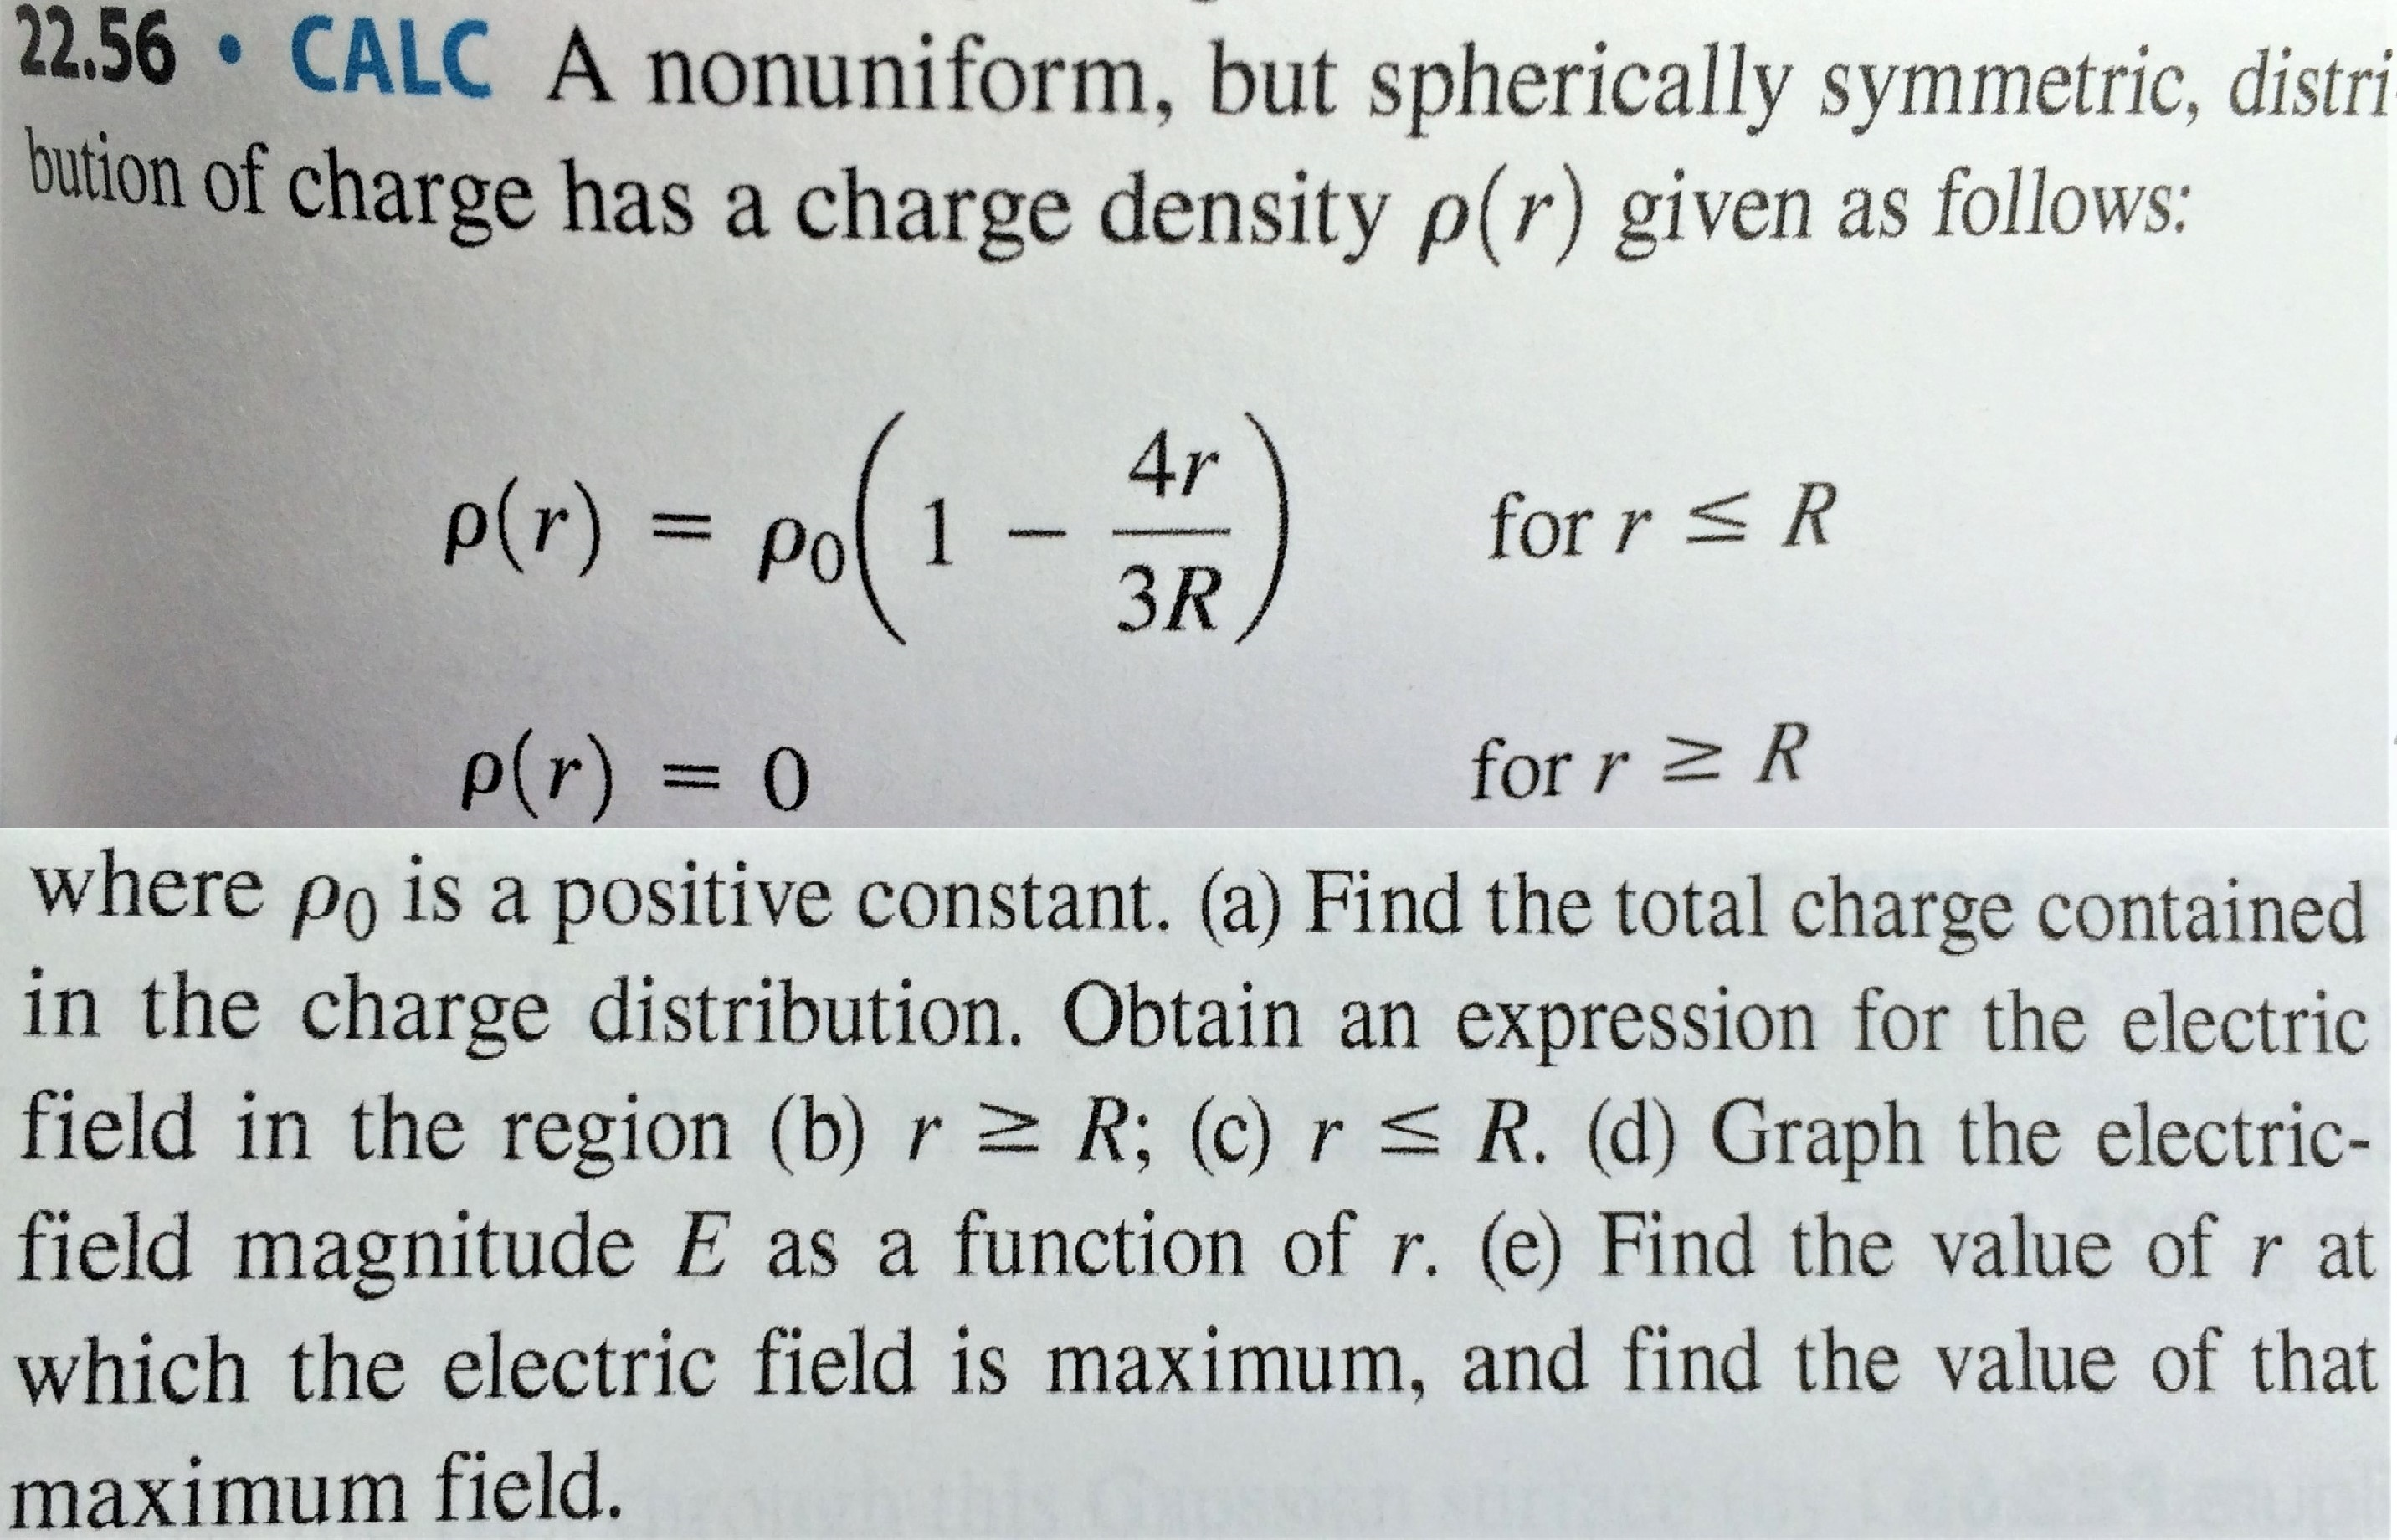 22.56 CALC A nonuniform, but spherically symmetric, distri- bution of charge has a charge density p(r) given as follows: 4r P(r) = A for r R 3R, P(r)= 0 for r R where po is a positive constant. (a) Find the total charge contained in the charge distribution. Obtain an expression for the electric field in the region (b) r z R; (c) rs R. (d) Graph the electric- field magnitude E as a function of r. (e) Find the value of r at which the electric field is maximum, and find the value of that maximum field.